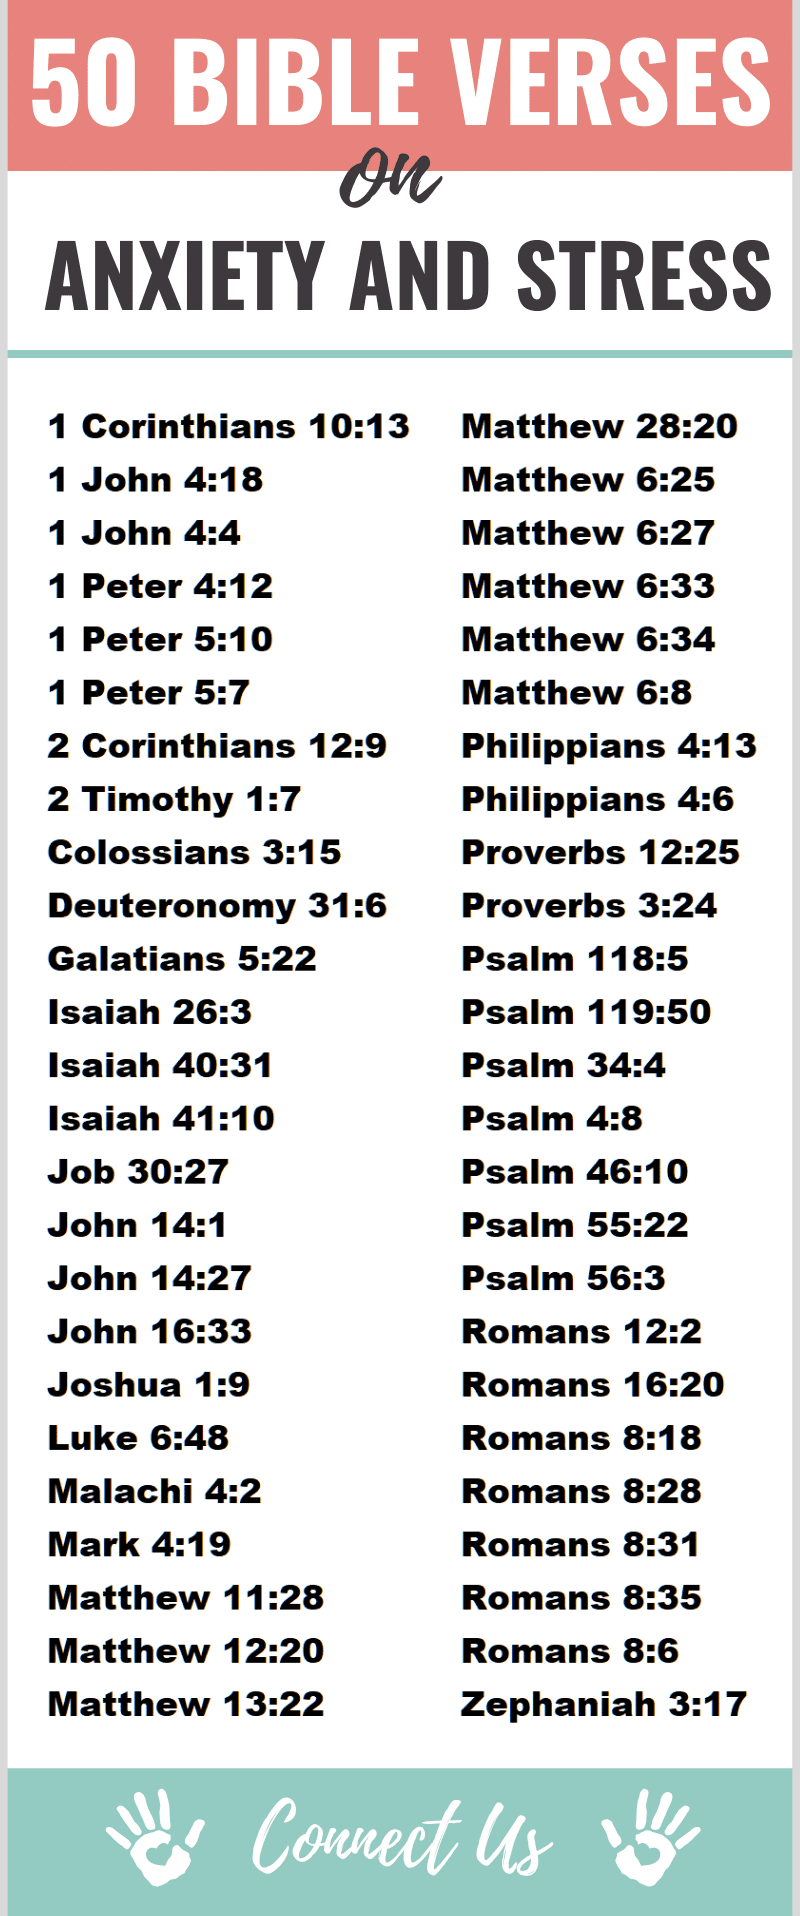 Bible Verses on Anxiety and Stress